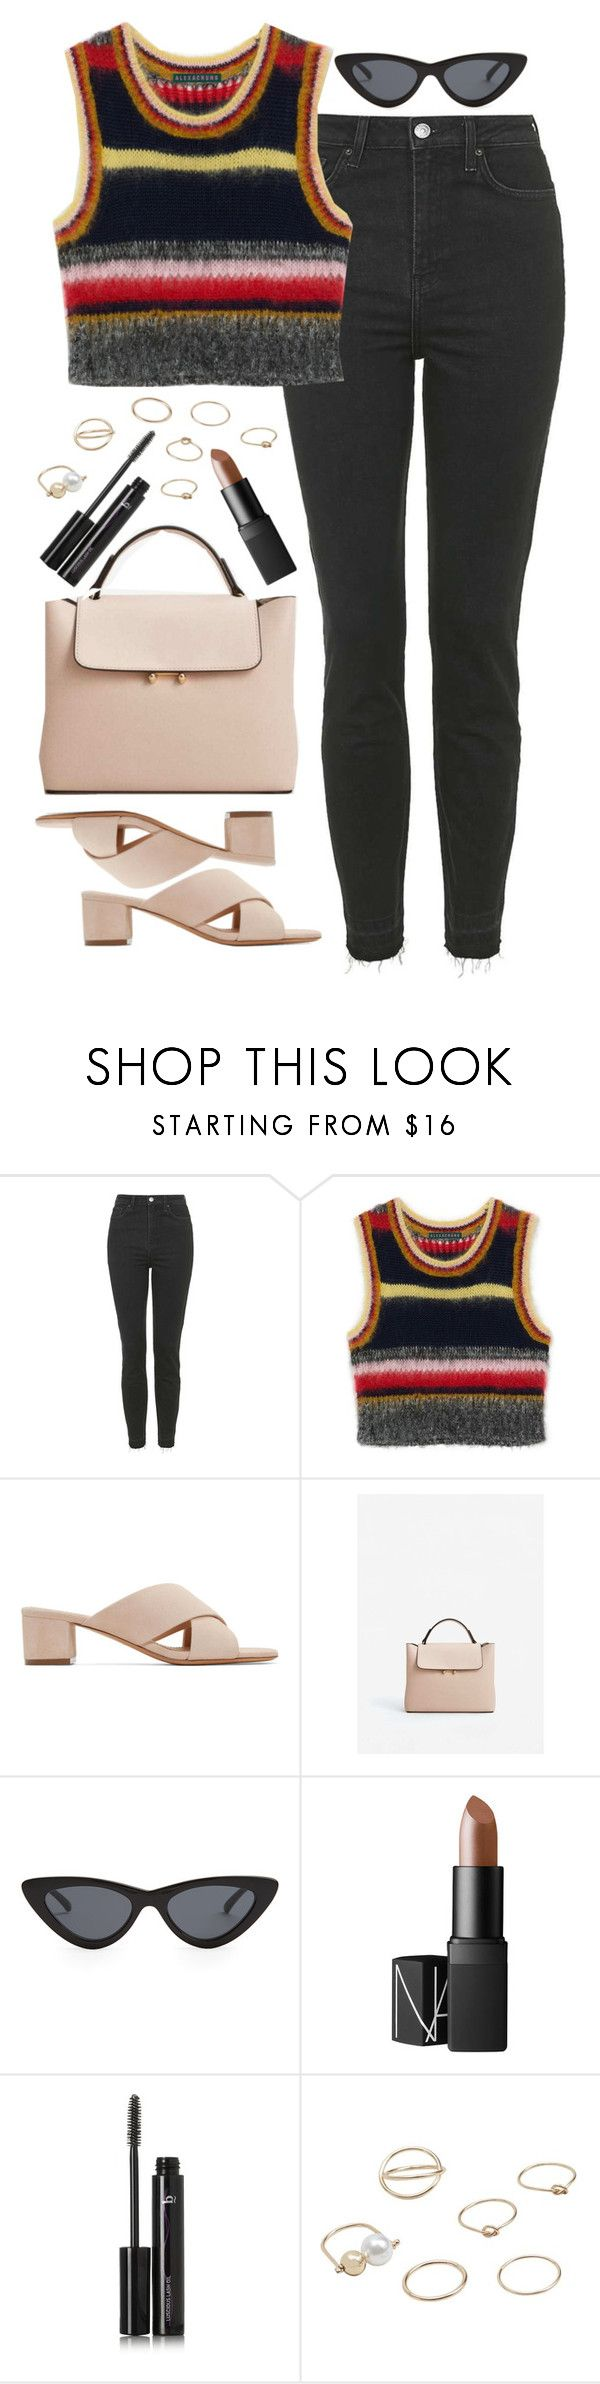 """""""Untitled #619"""" by lindsjayne ❤ liked on Polyvore featuring Topshop, Mansur Gavriel, MANGO, Le Specs, NARS Cosmetics and B The Eyebrow Experts"""